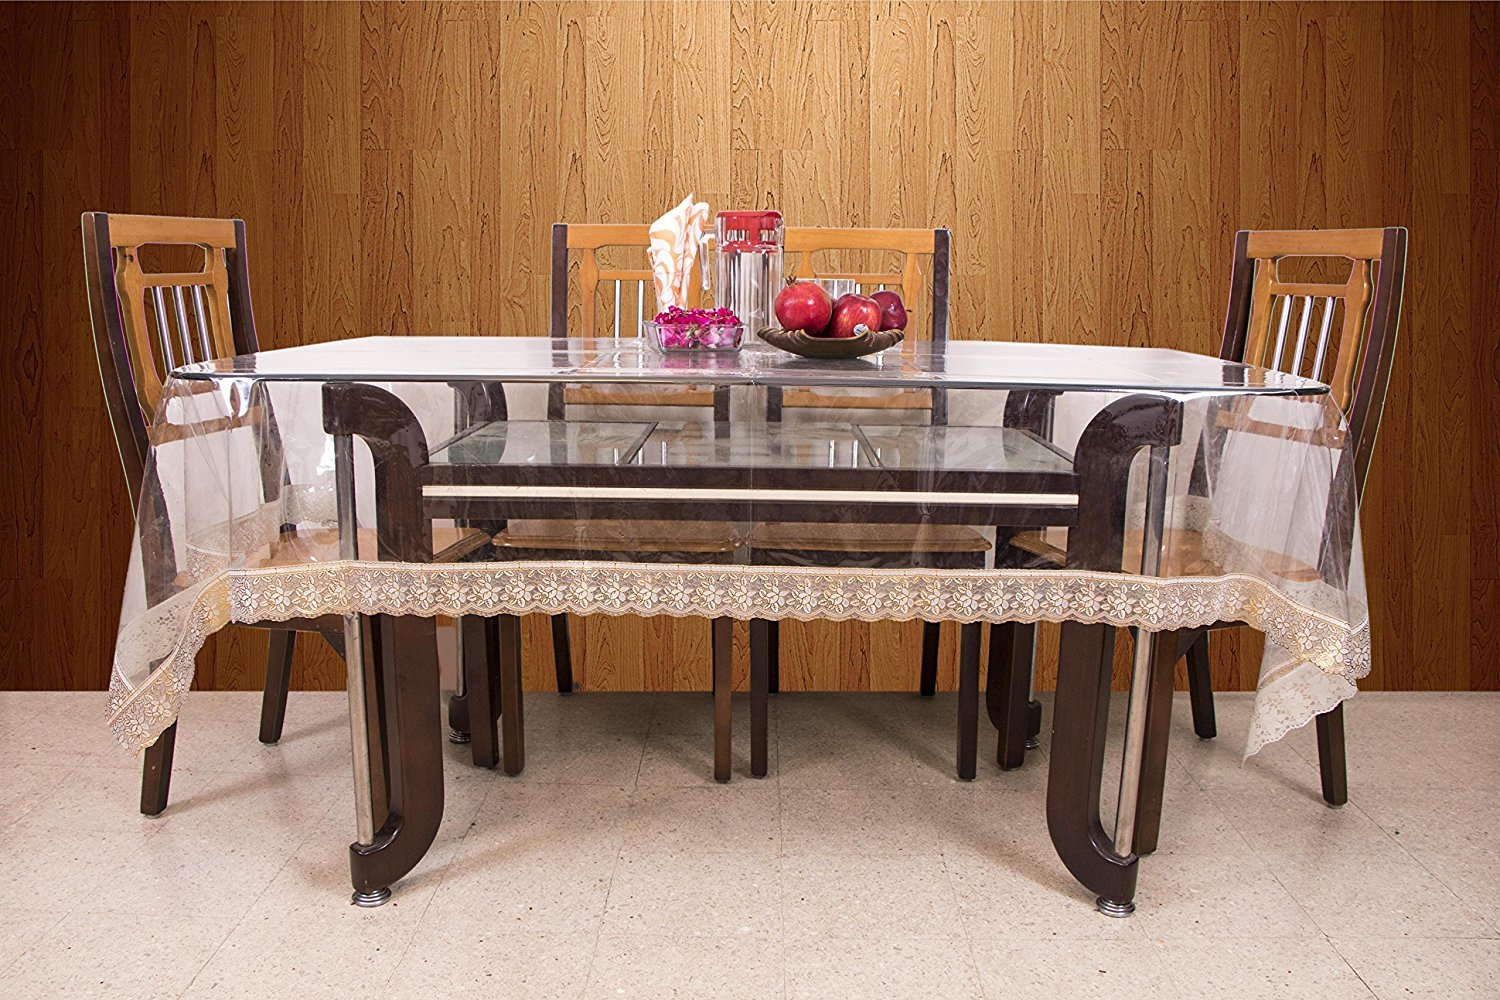 Countermoon Org Dining Table Decor Beautiful Dining Rooms Dining Table